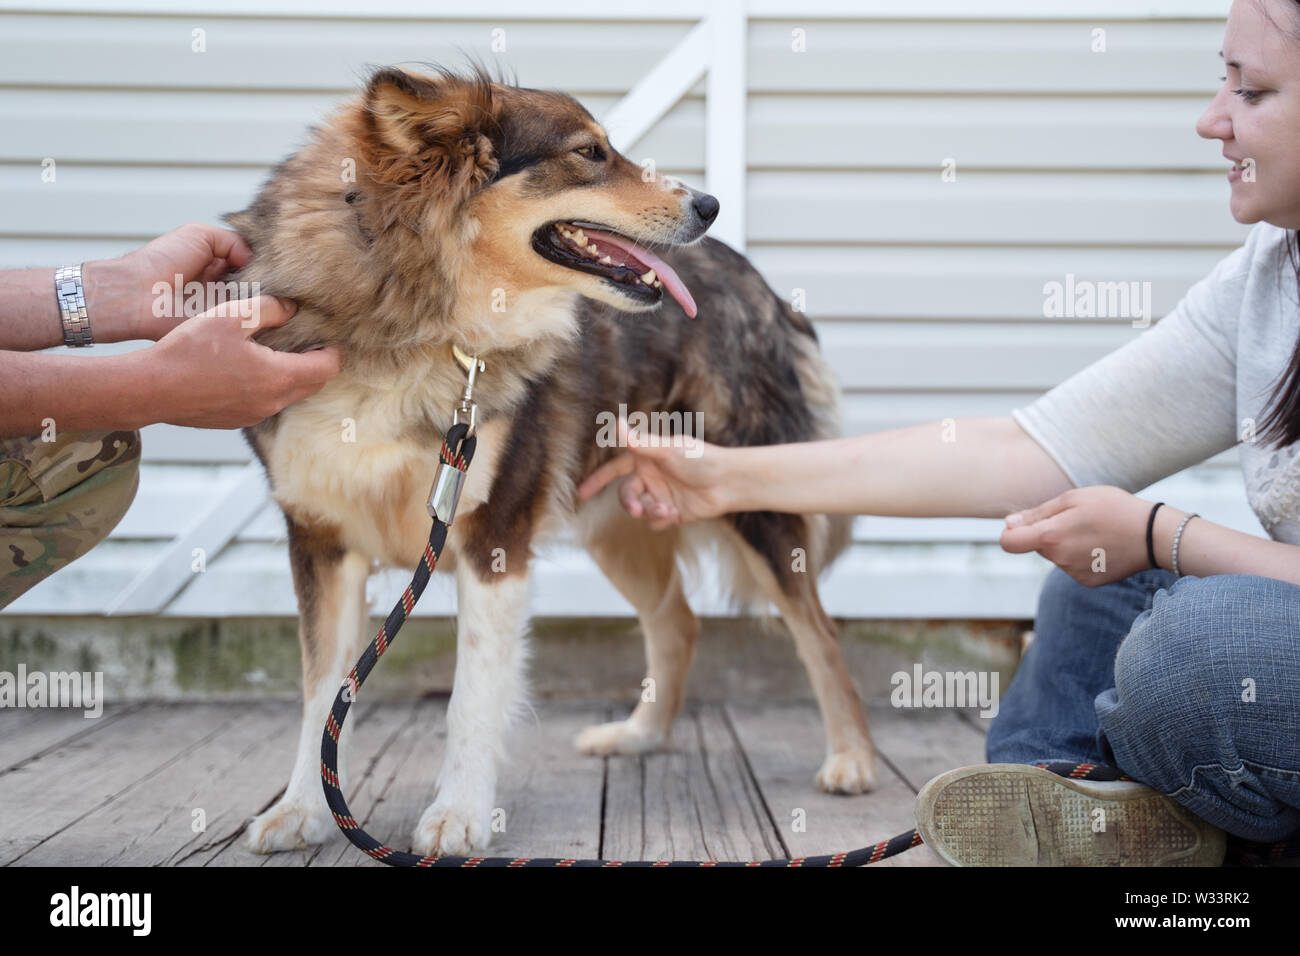 Photo of side of sitting woman in jeans and white sweater stroking dog on leash against background of white wooden wall on street - Stock Image